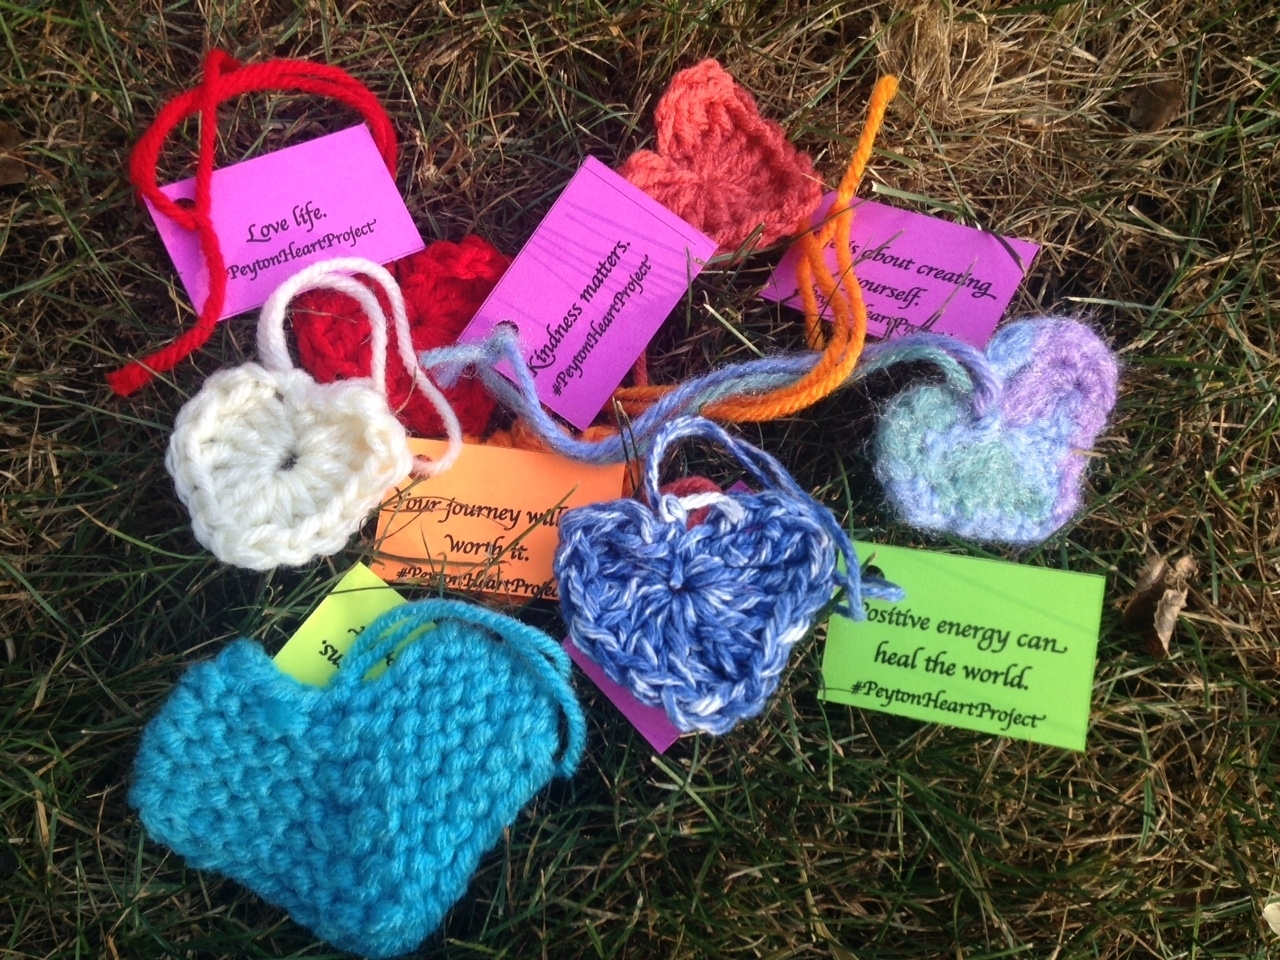 The Peyton Heart Project Comes to Morristown